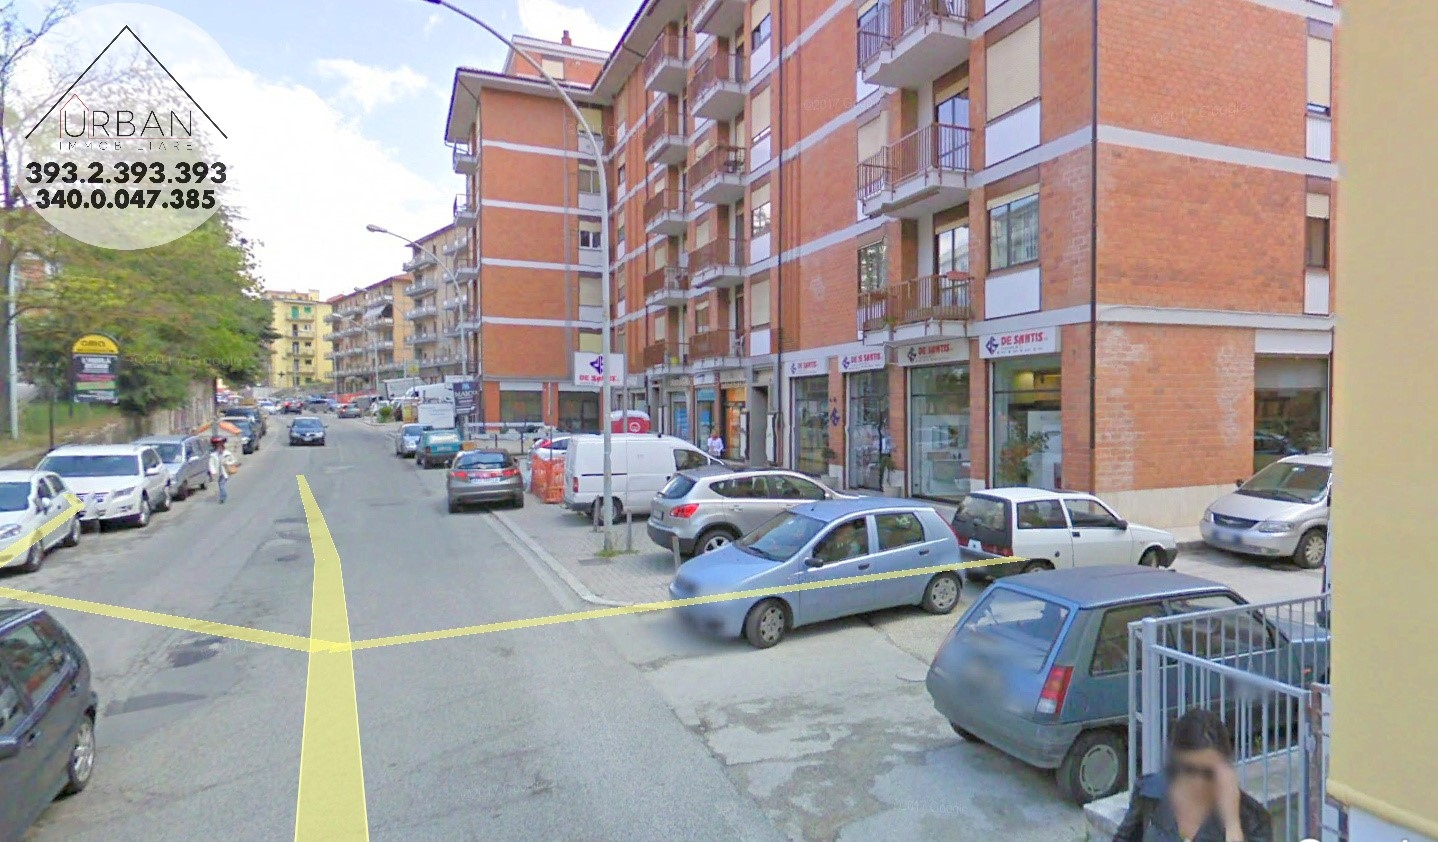 L'Aquila (AQ) - Via Strinella